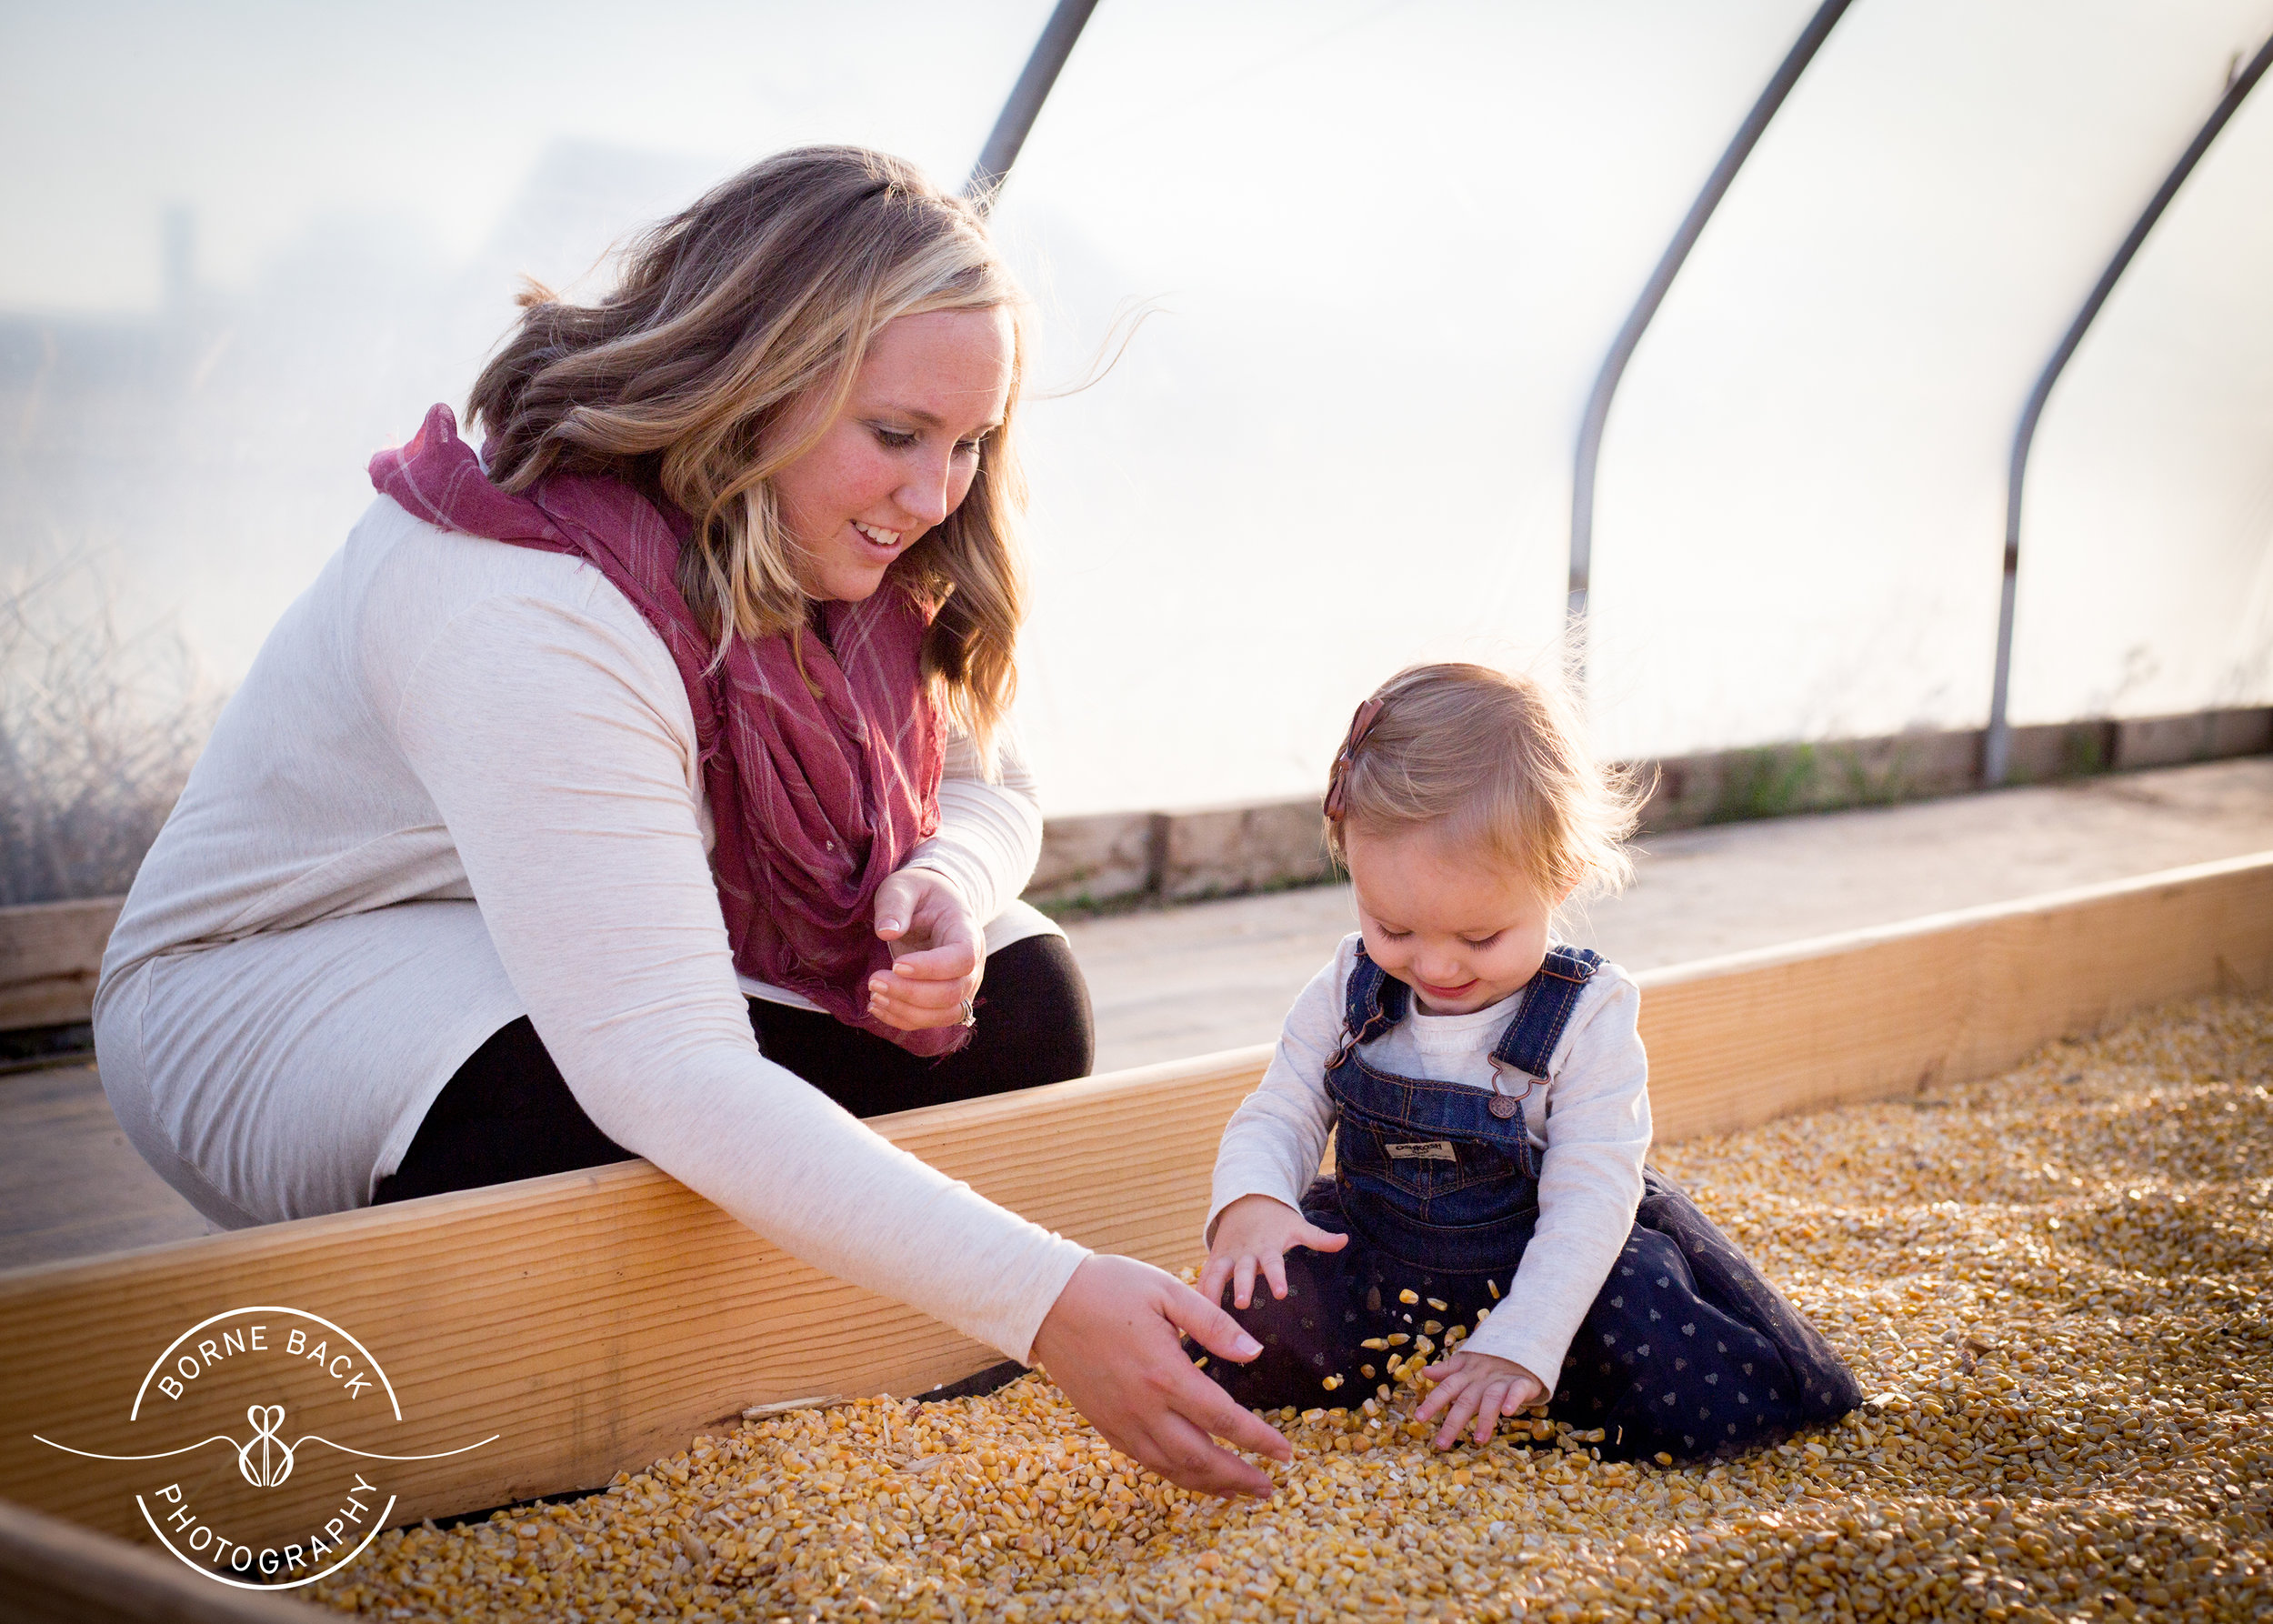 For this session, we visited a local fall farm fair and it is safe to say that this may have been one of the most unforced, natural sessions I've had. Everyone had a great time!